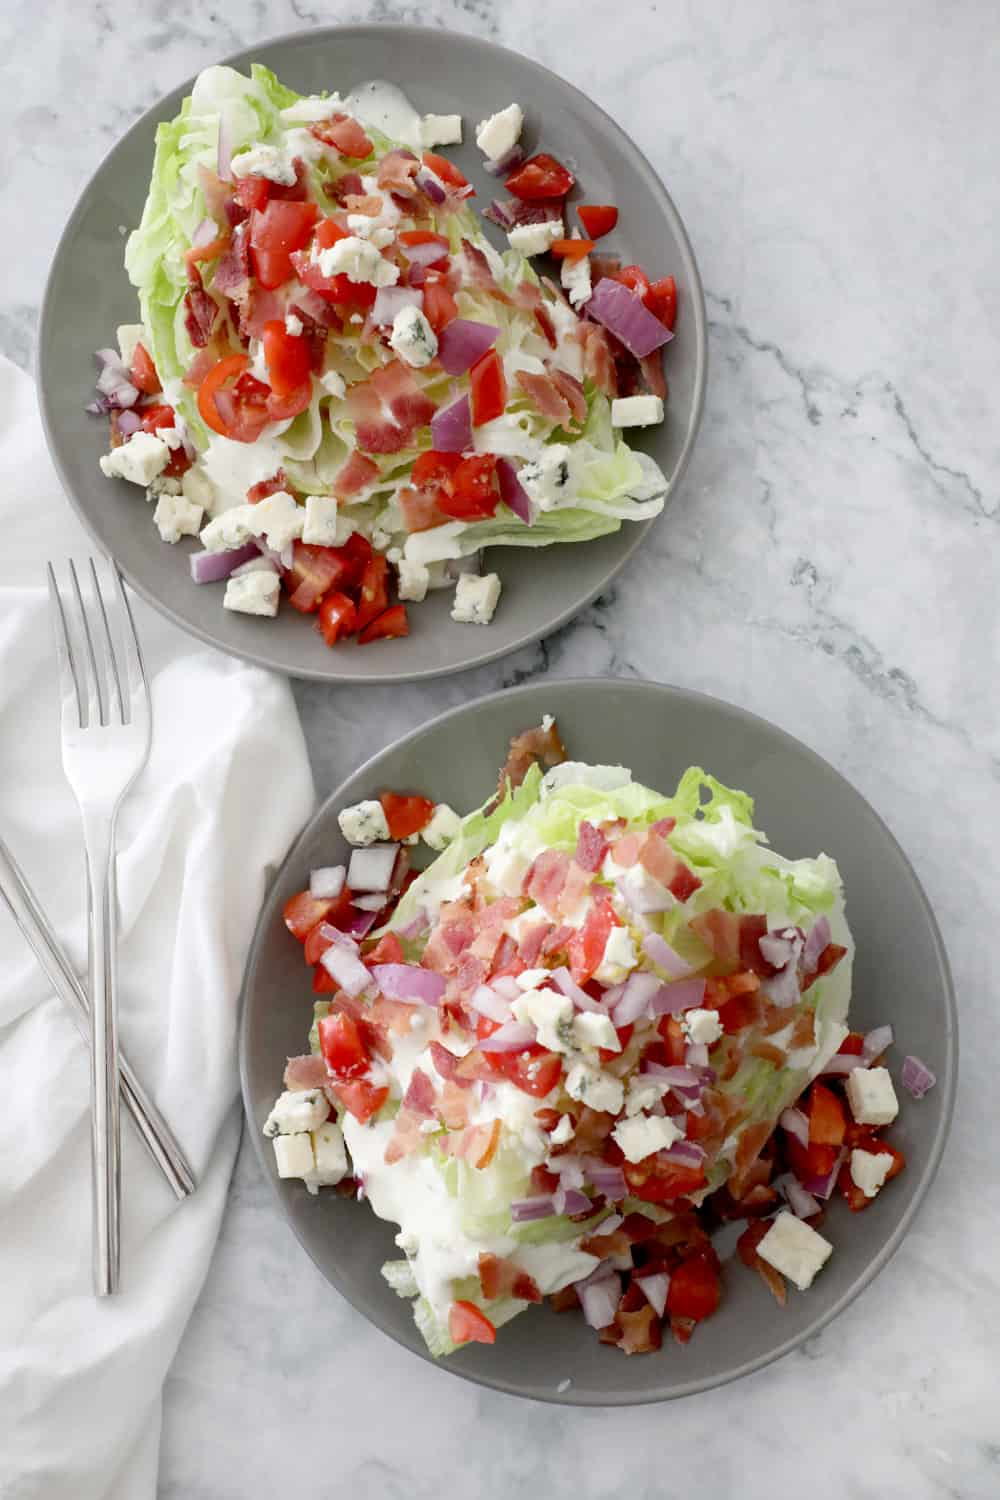 two wedge salads on grey plates next to white cloth napkin and forks